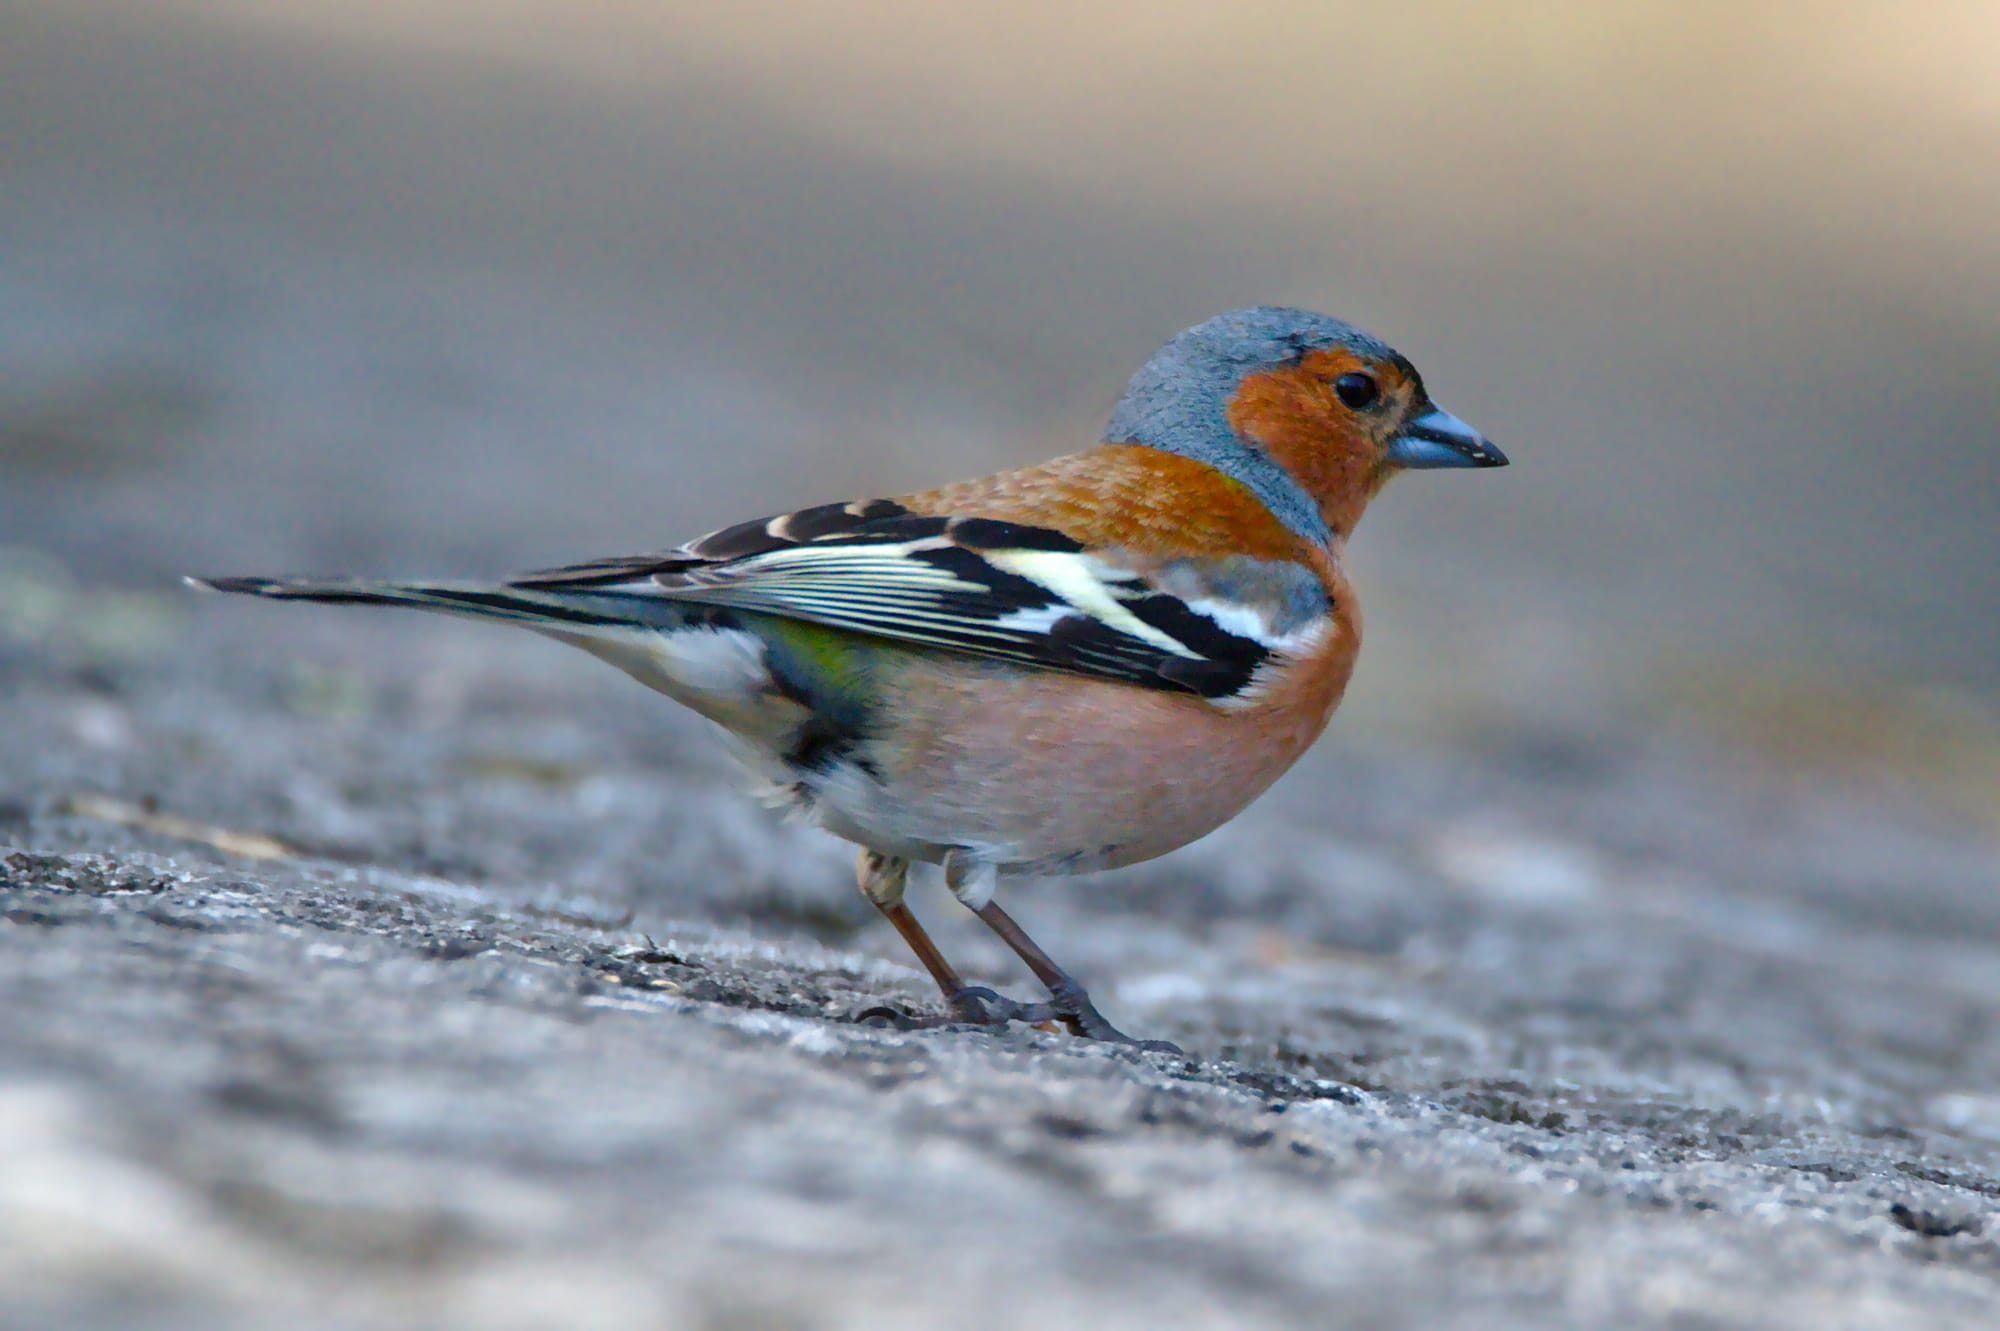 A male chaffinch on a cold winters day